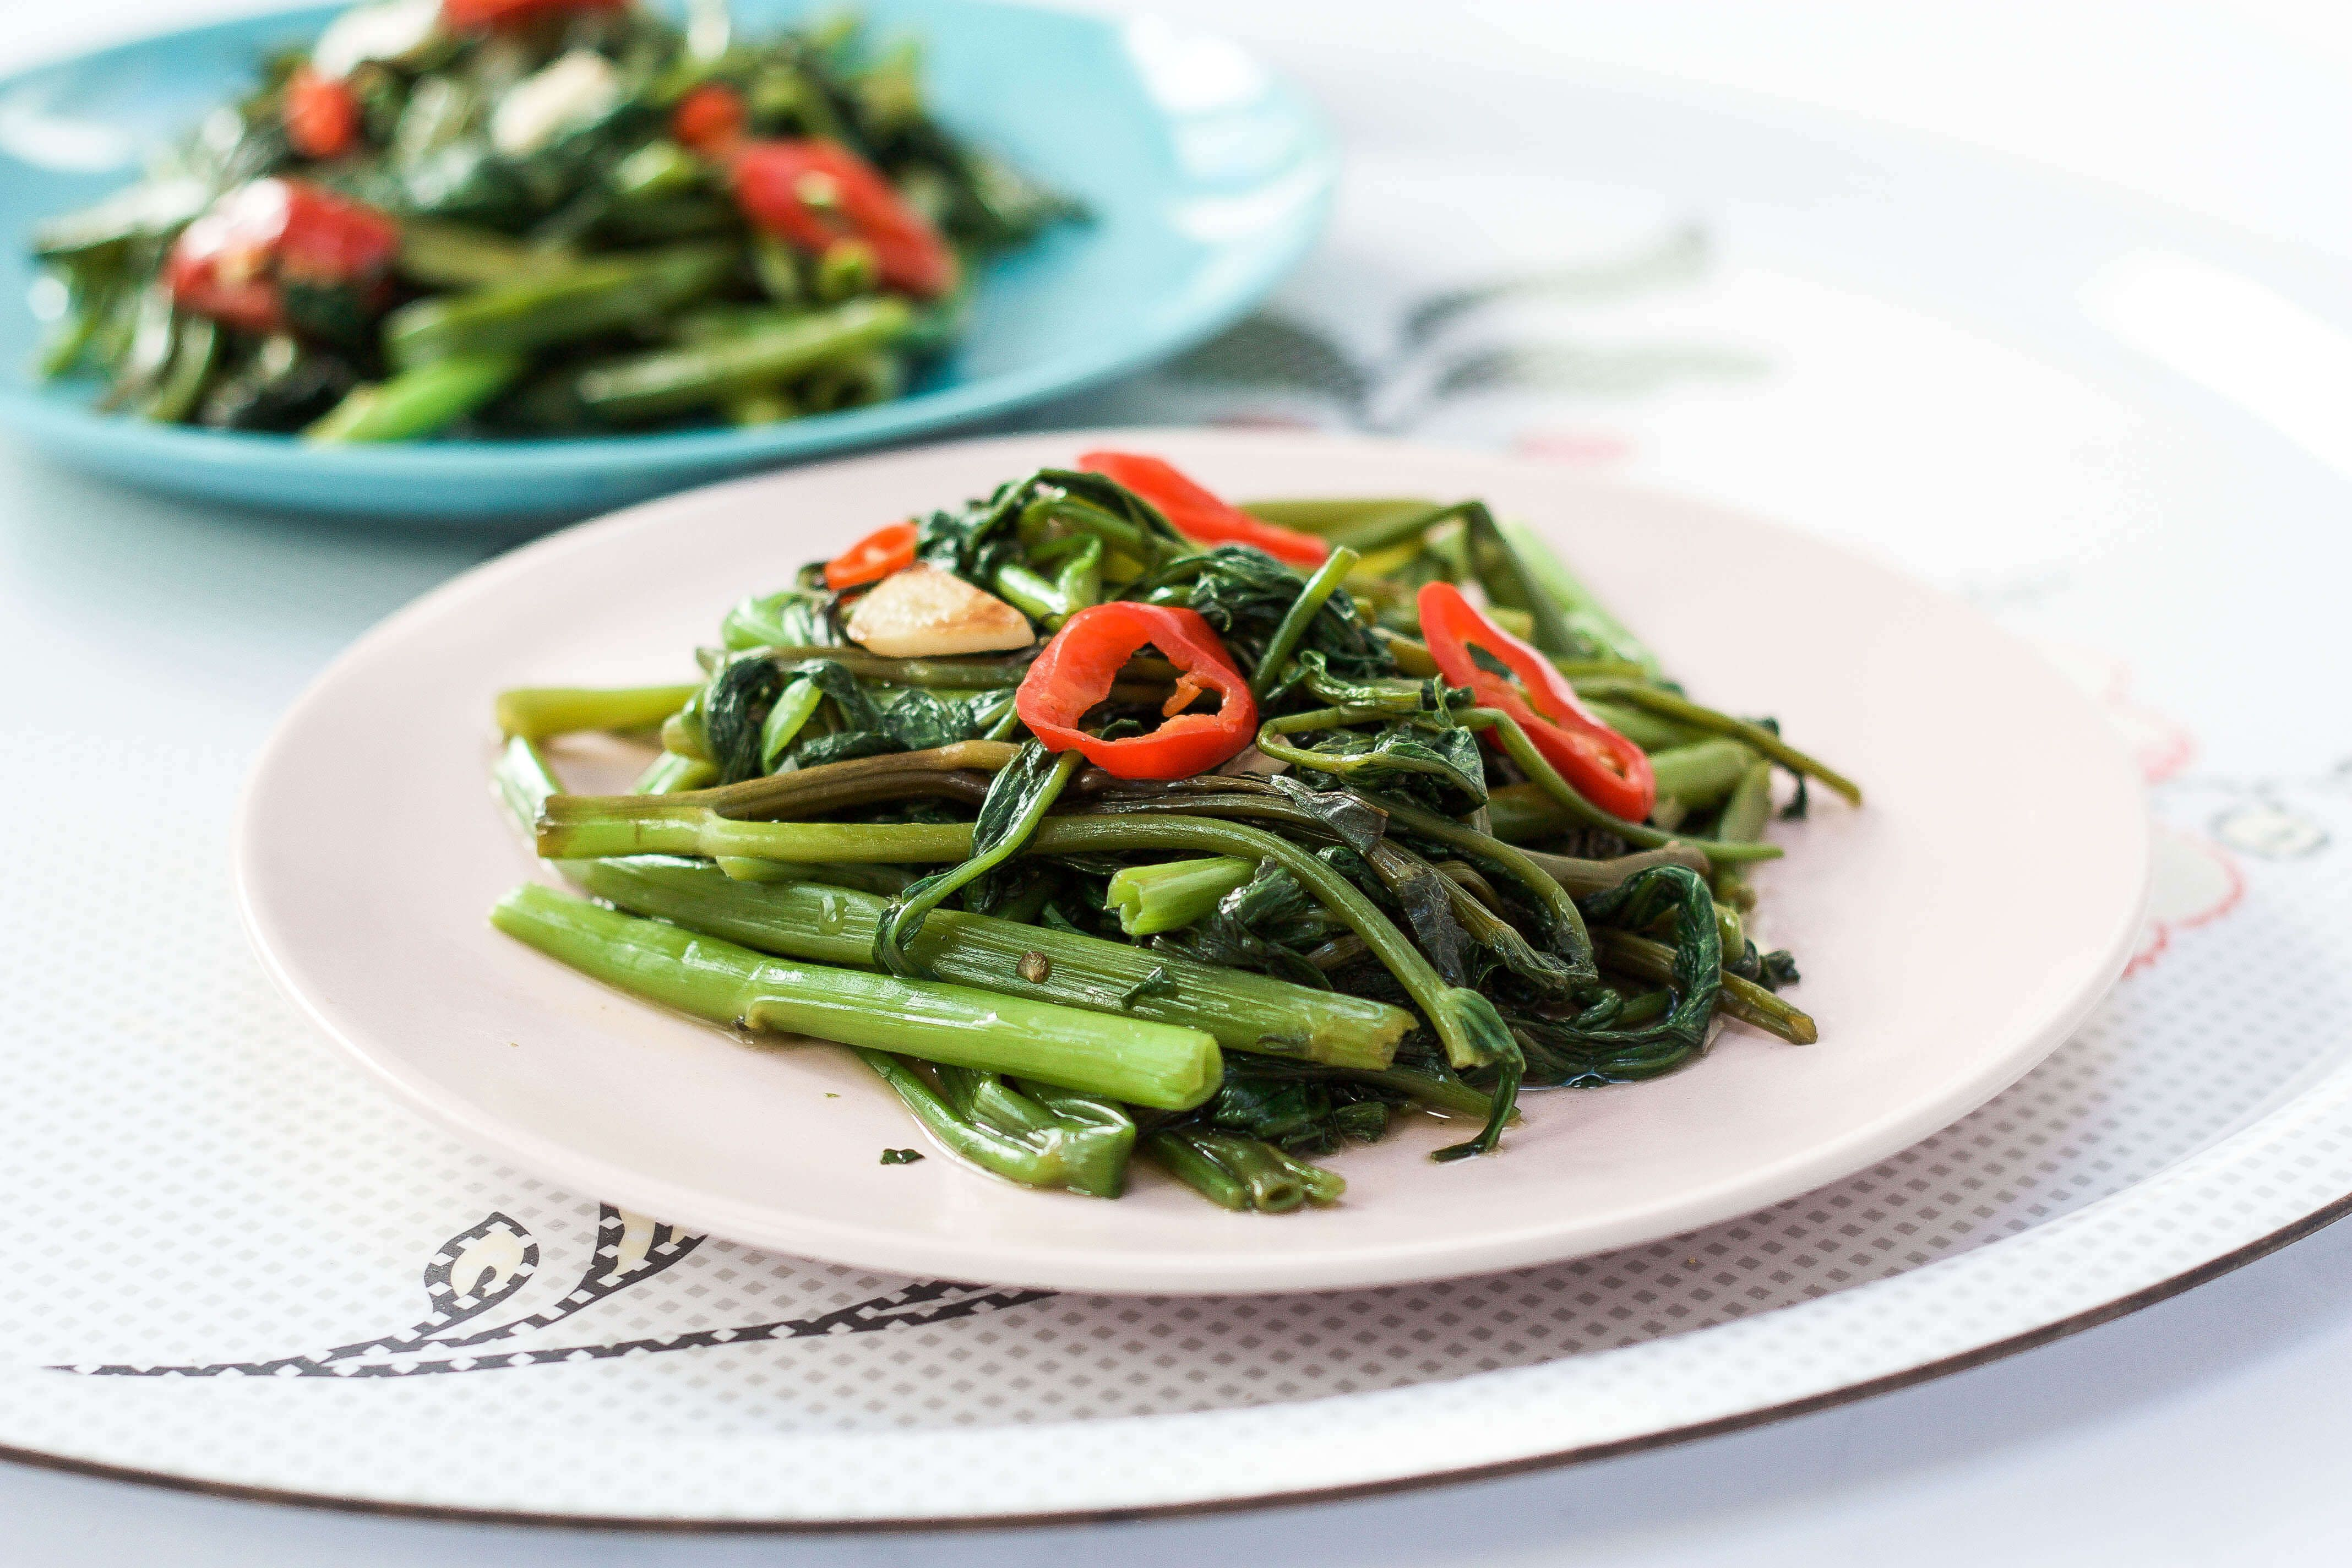 Vietnamese Stir-fry Morning Glory - Also known as water spinach. Stir-fry  with some garlic and chilli. Ready in 10 mins   Chinese side dishes, Asian  recipes, Food